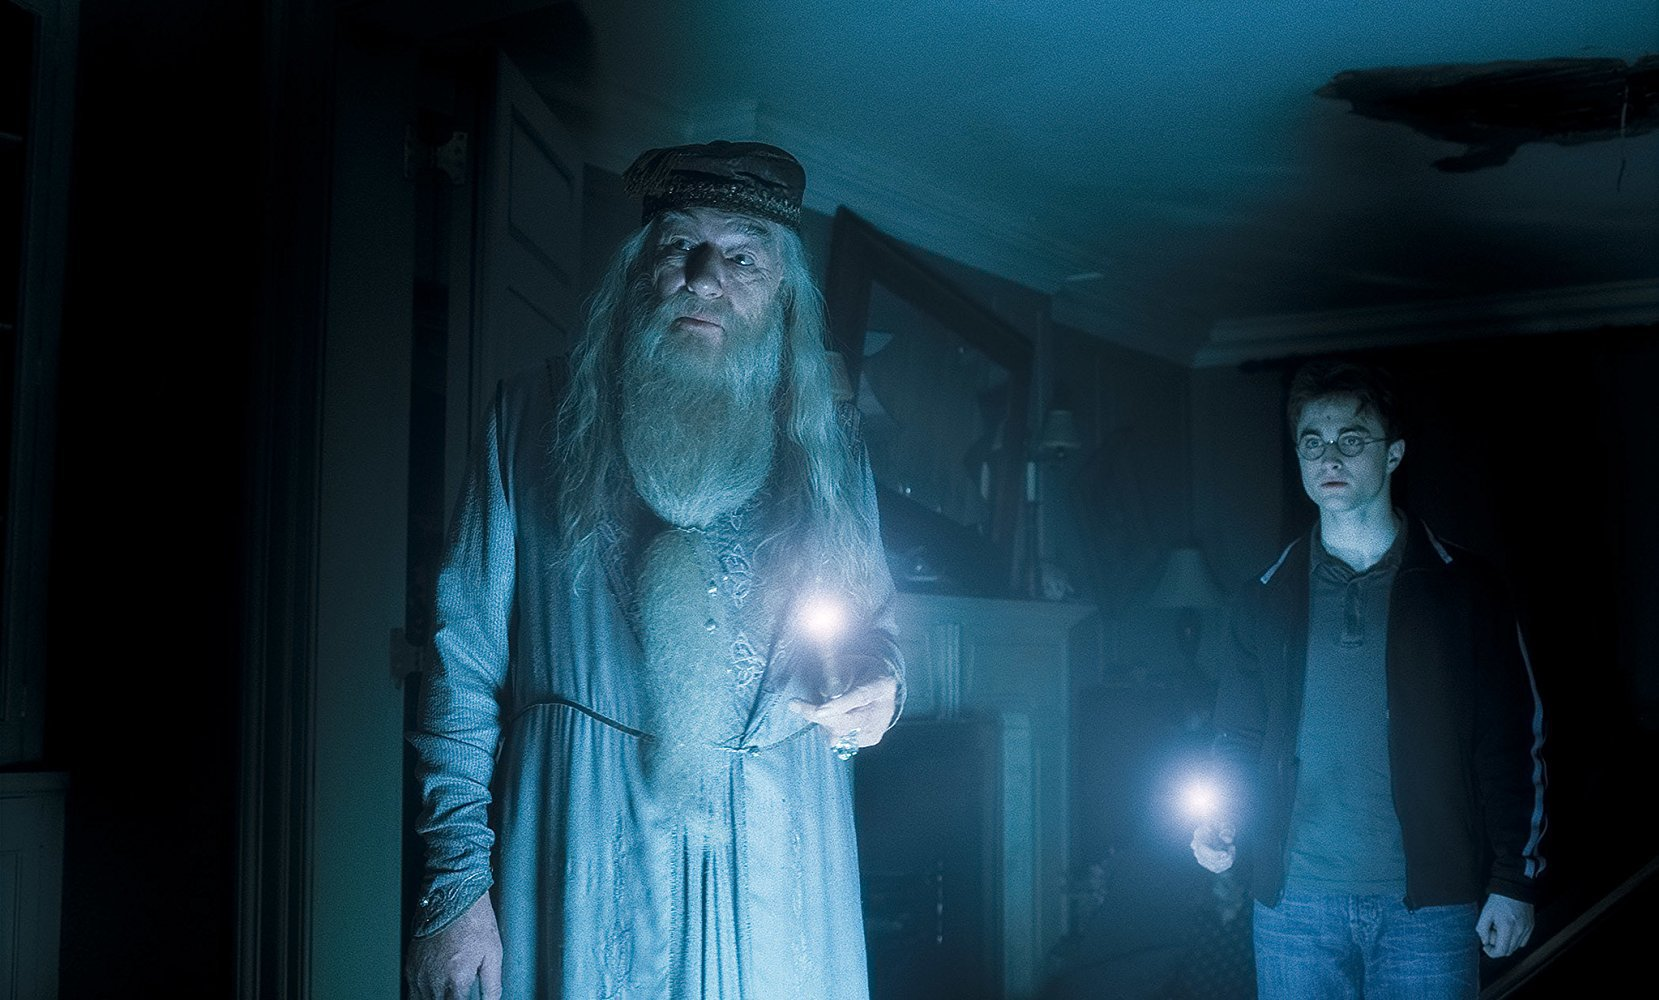 Professor Dumbledore (Michael Gambon) and Harry Potter (Daniel Radcliffe) head in search of Voldemort's Horcrux in Harry Potter and the Half-Blood Prince (2009)